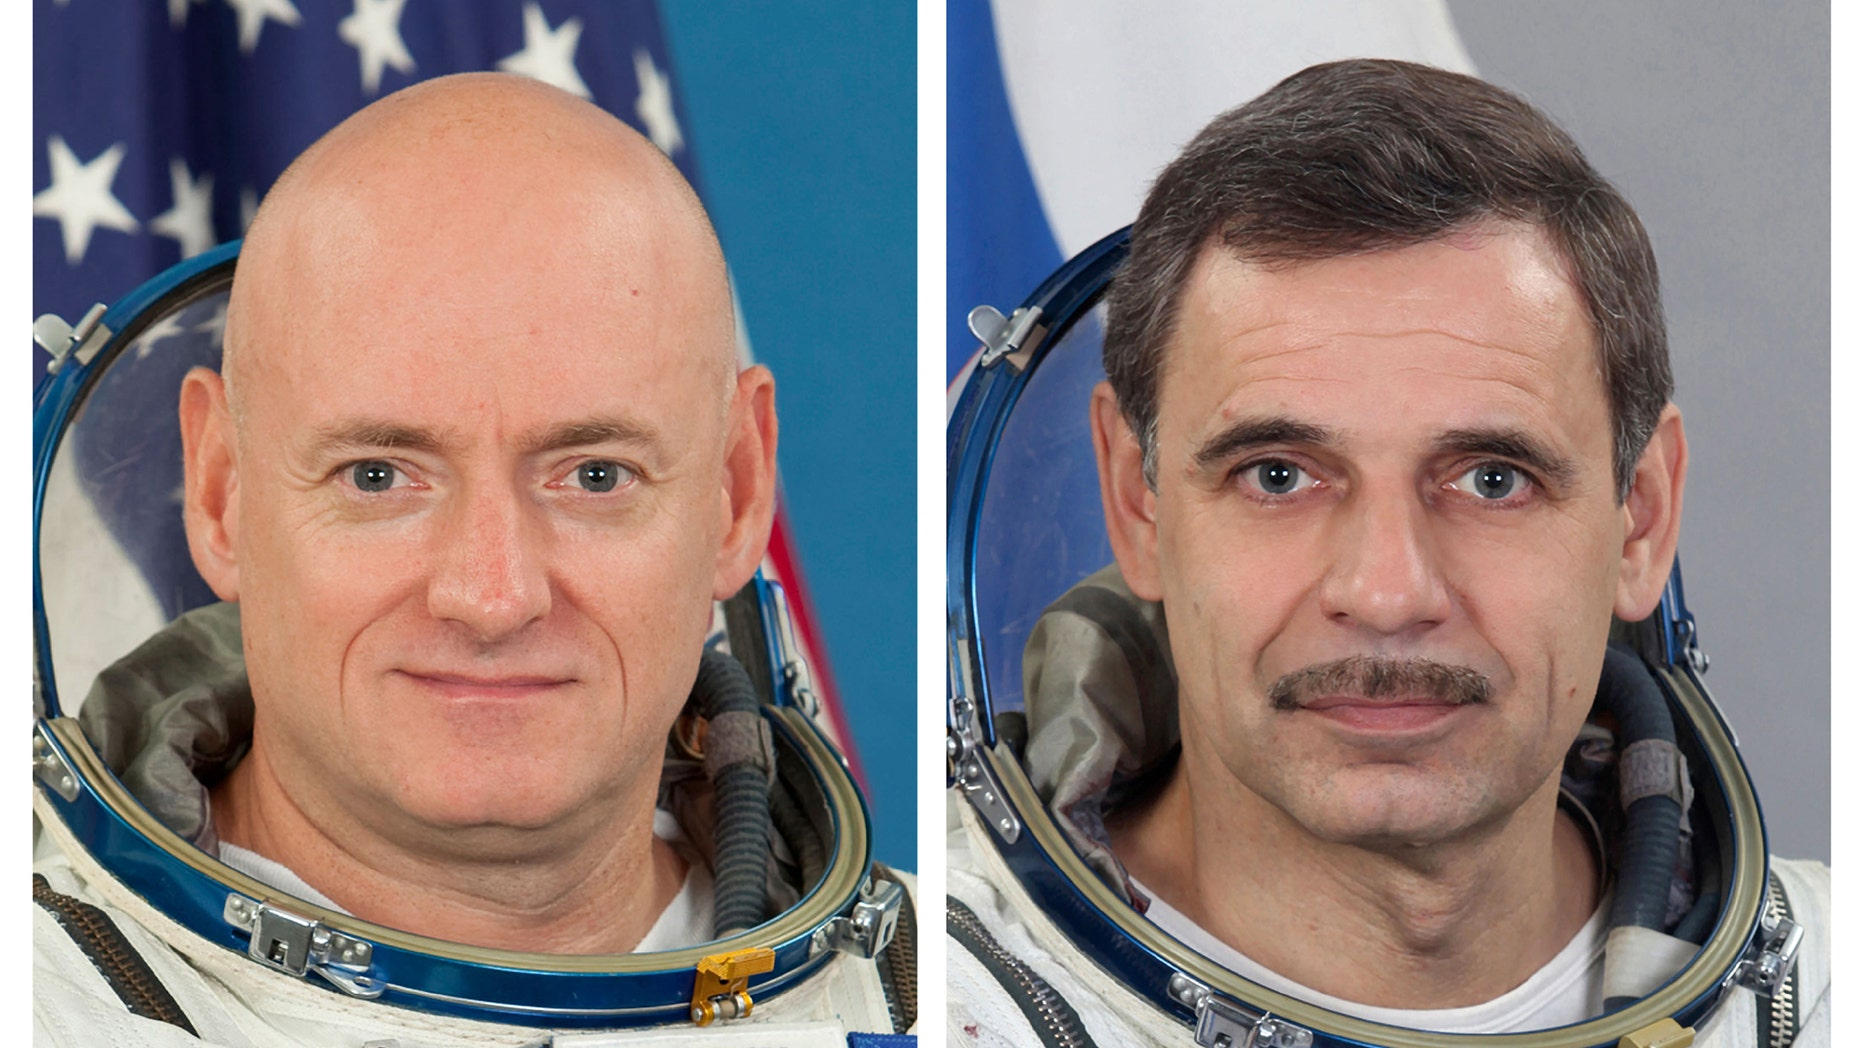 FILE - This combination of photos provided by the Gagarin Cosmonaut Training Center via NASA, shows NASA astronaut Scott Kelly, left, and Russian cosmonaut Mikhail Kornienko.